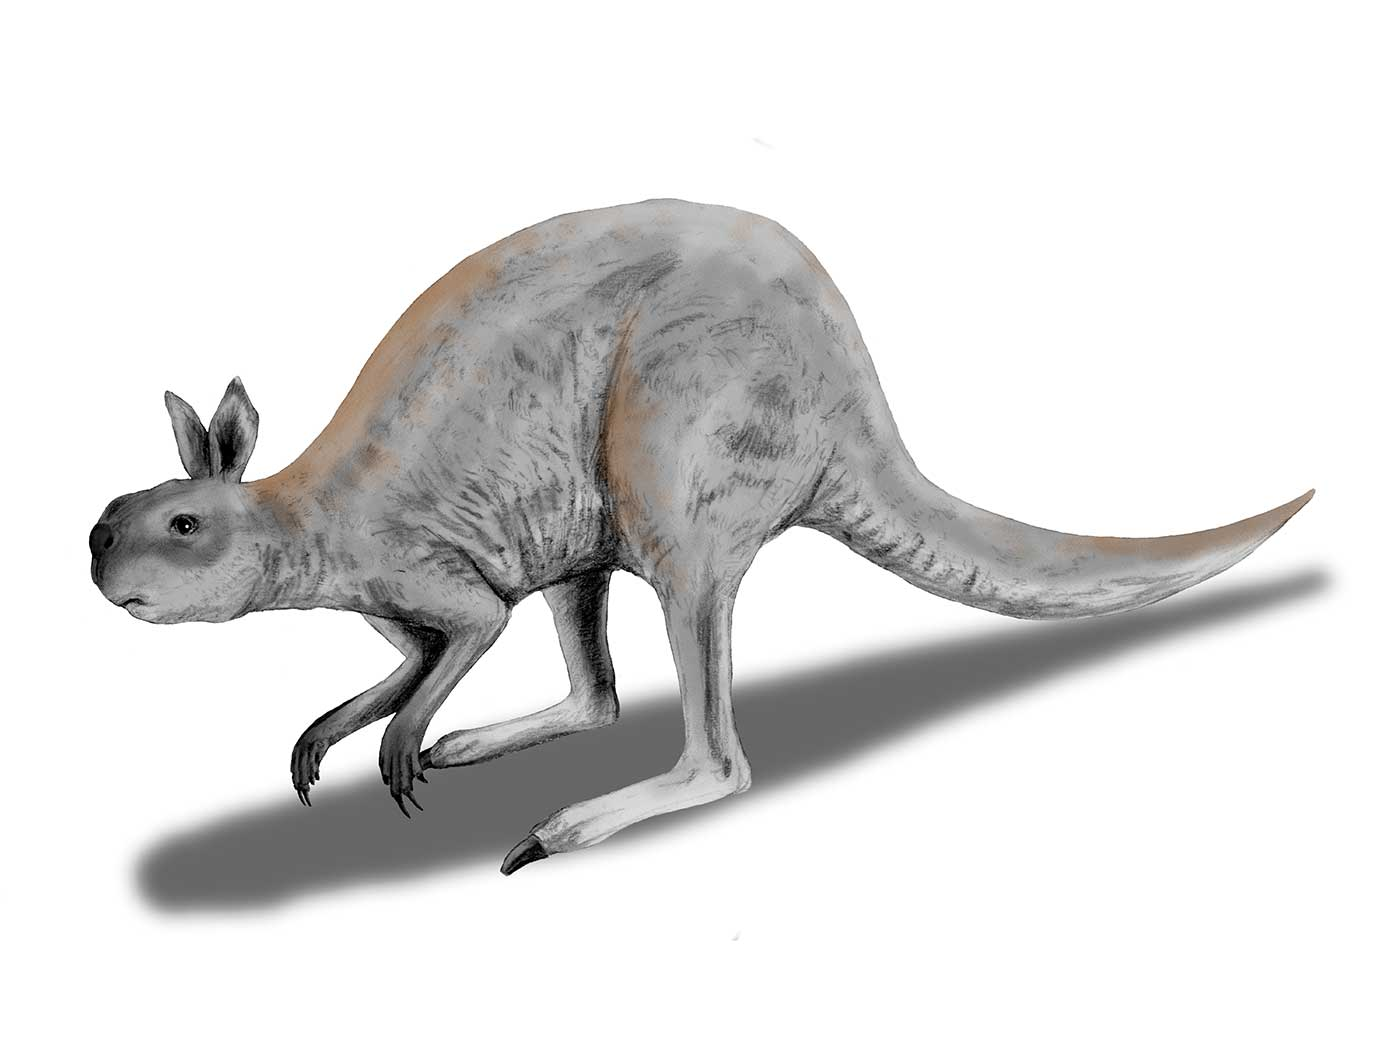 Colour illustration of a kangaroo-like animal with grey-brown fur and short, stumpy head. - click to view larger image